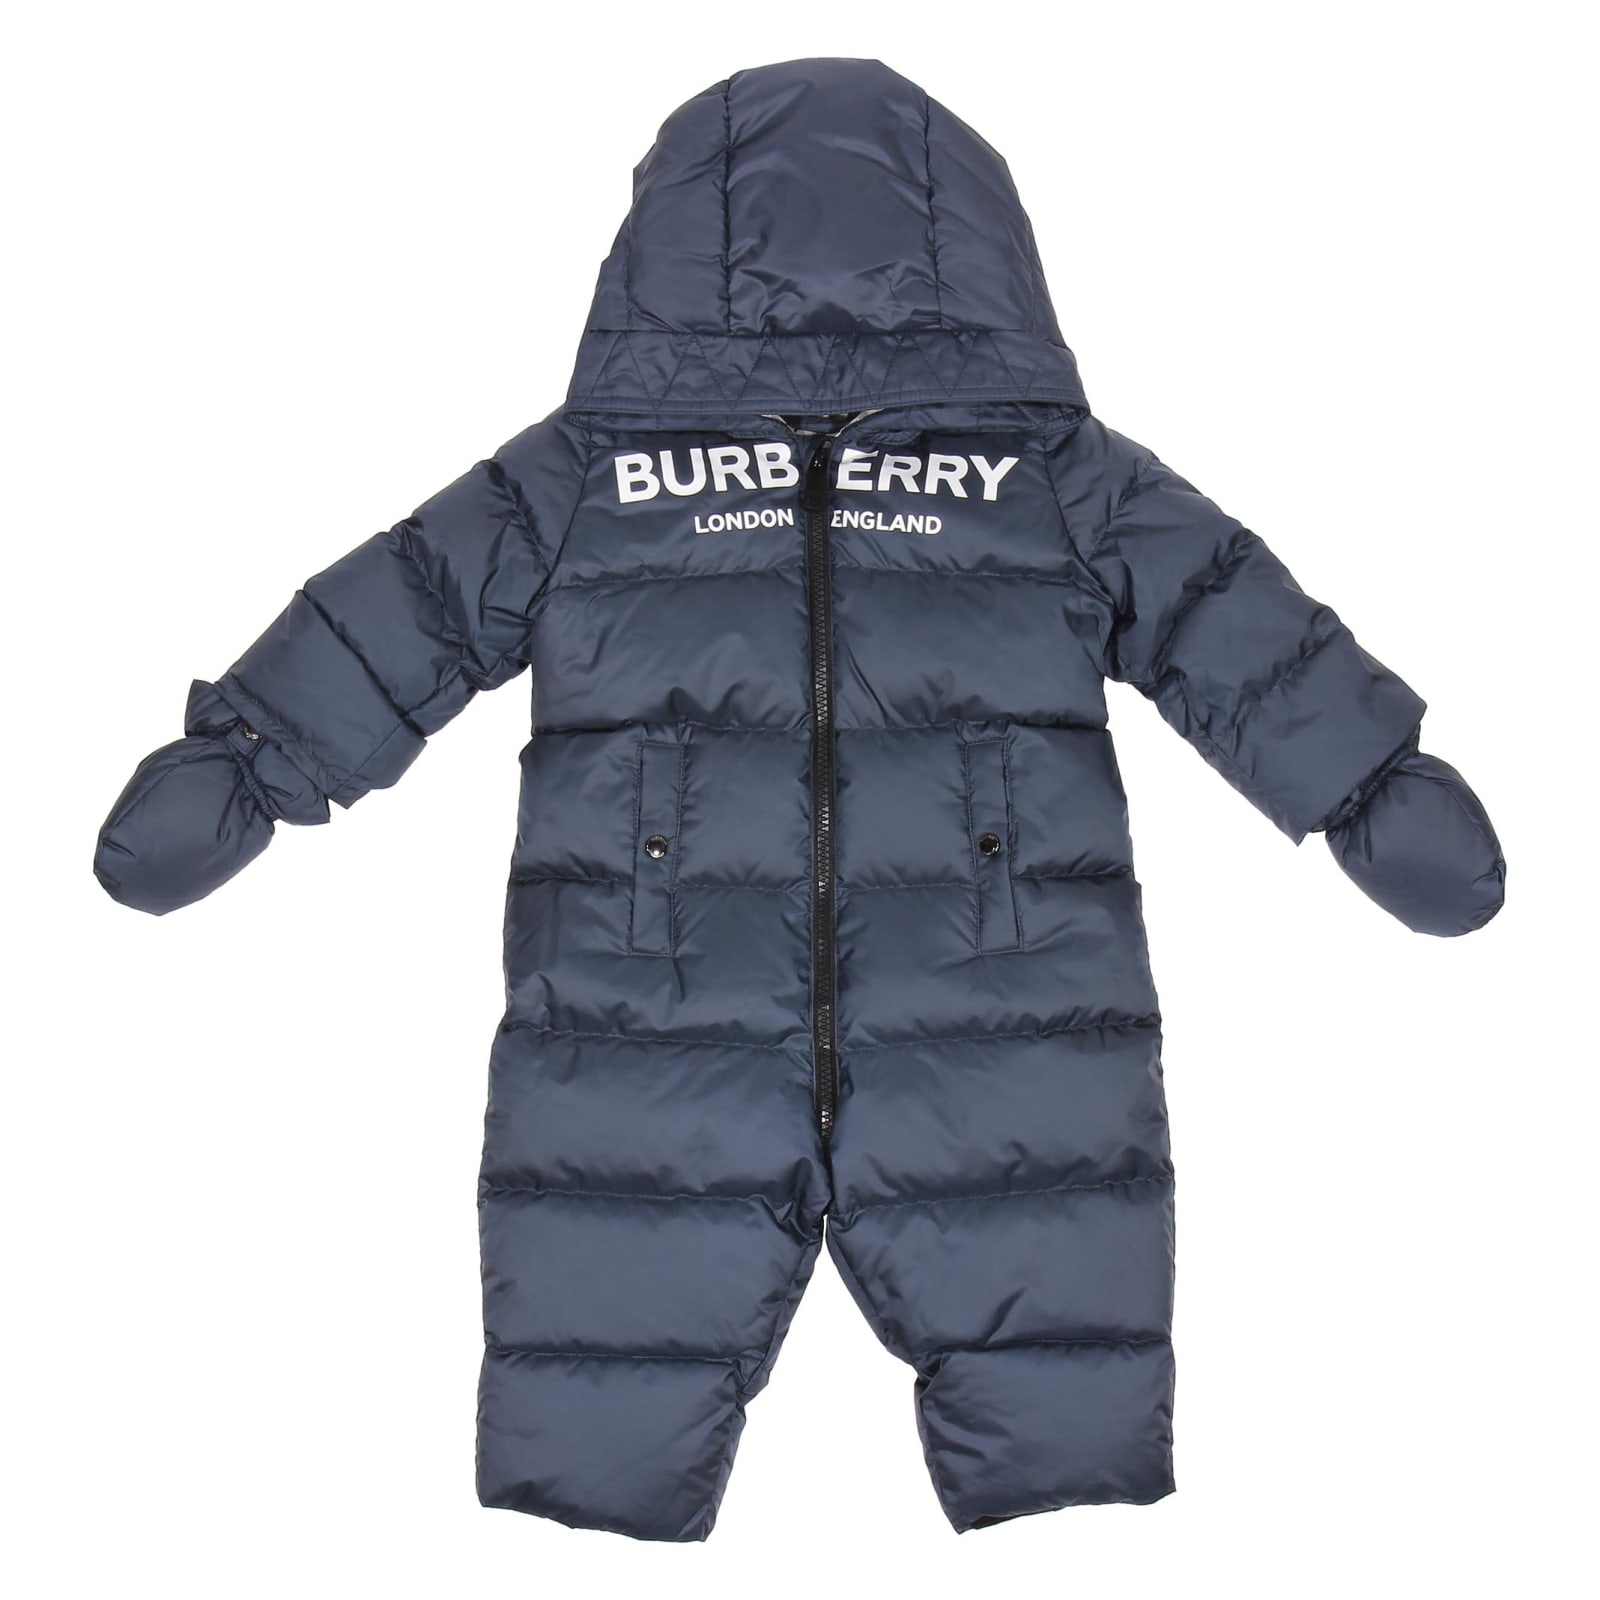 Burberry Babies' Jumpsuit In Blu